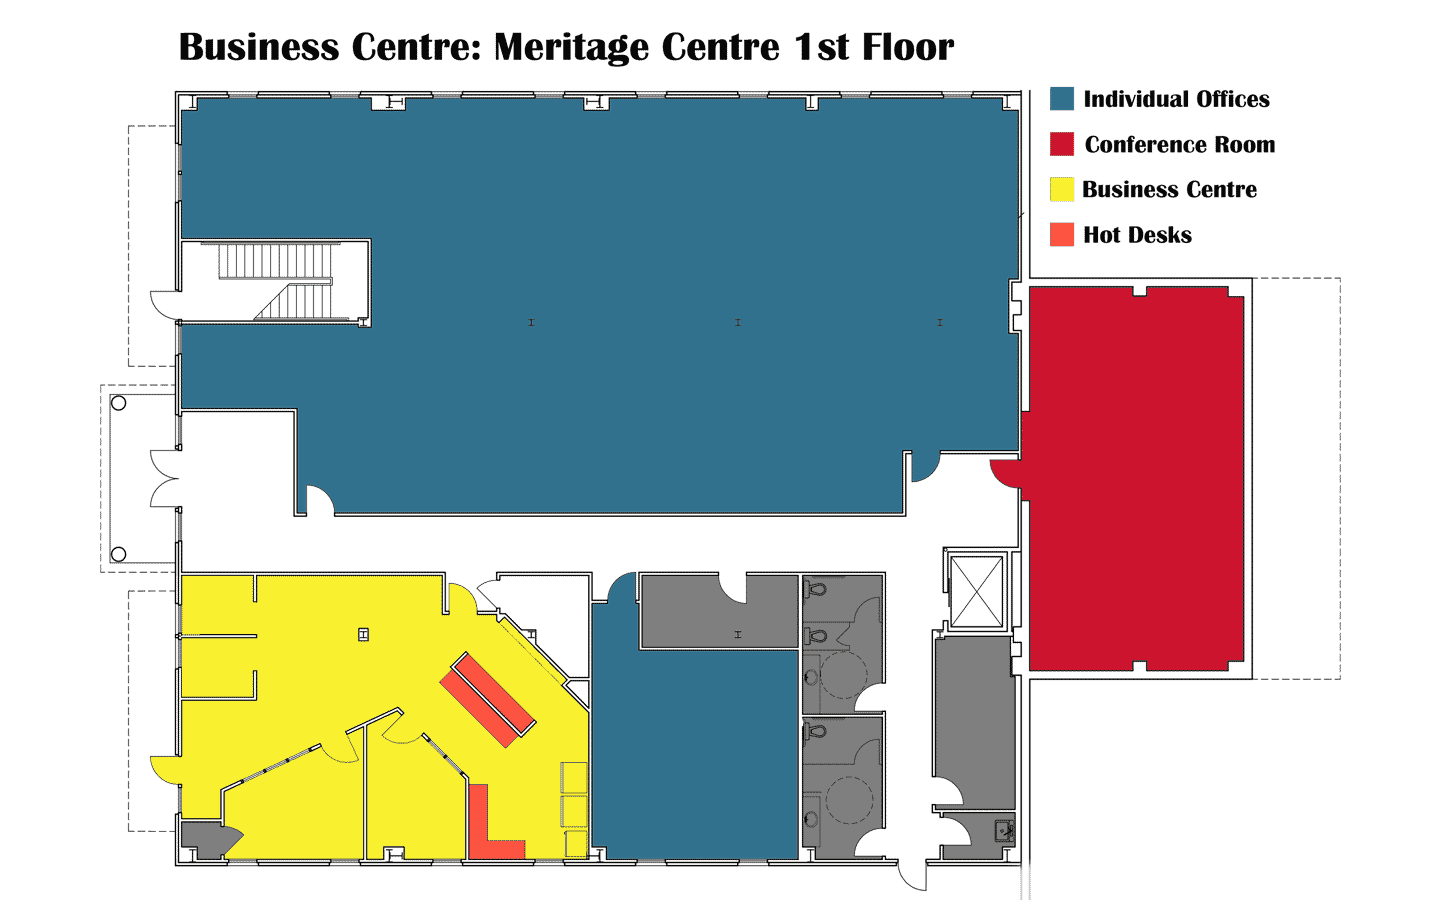 Layout of the first floor